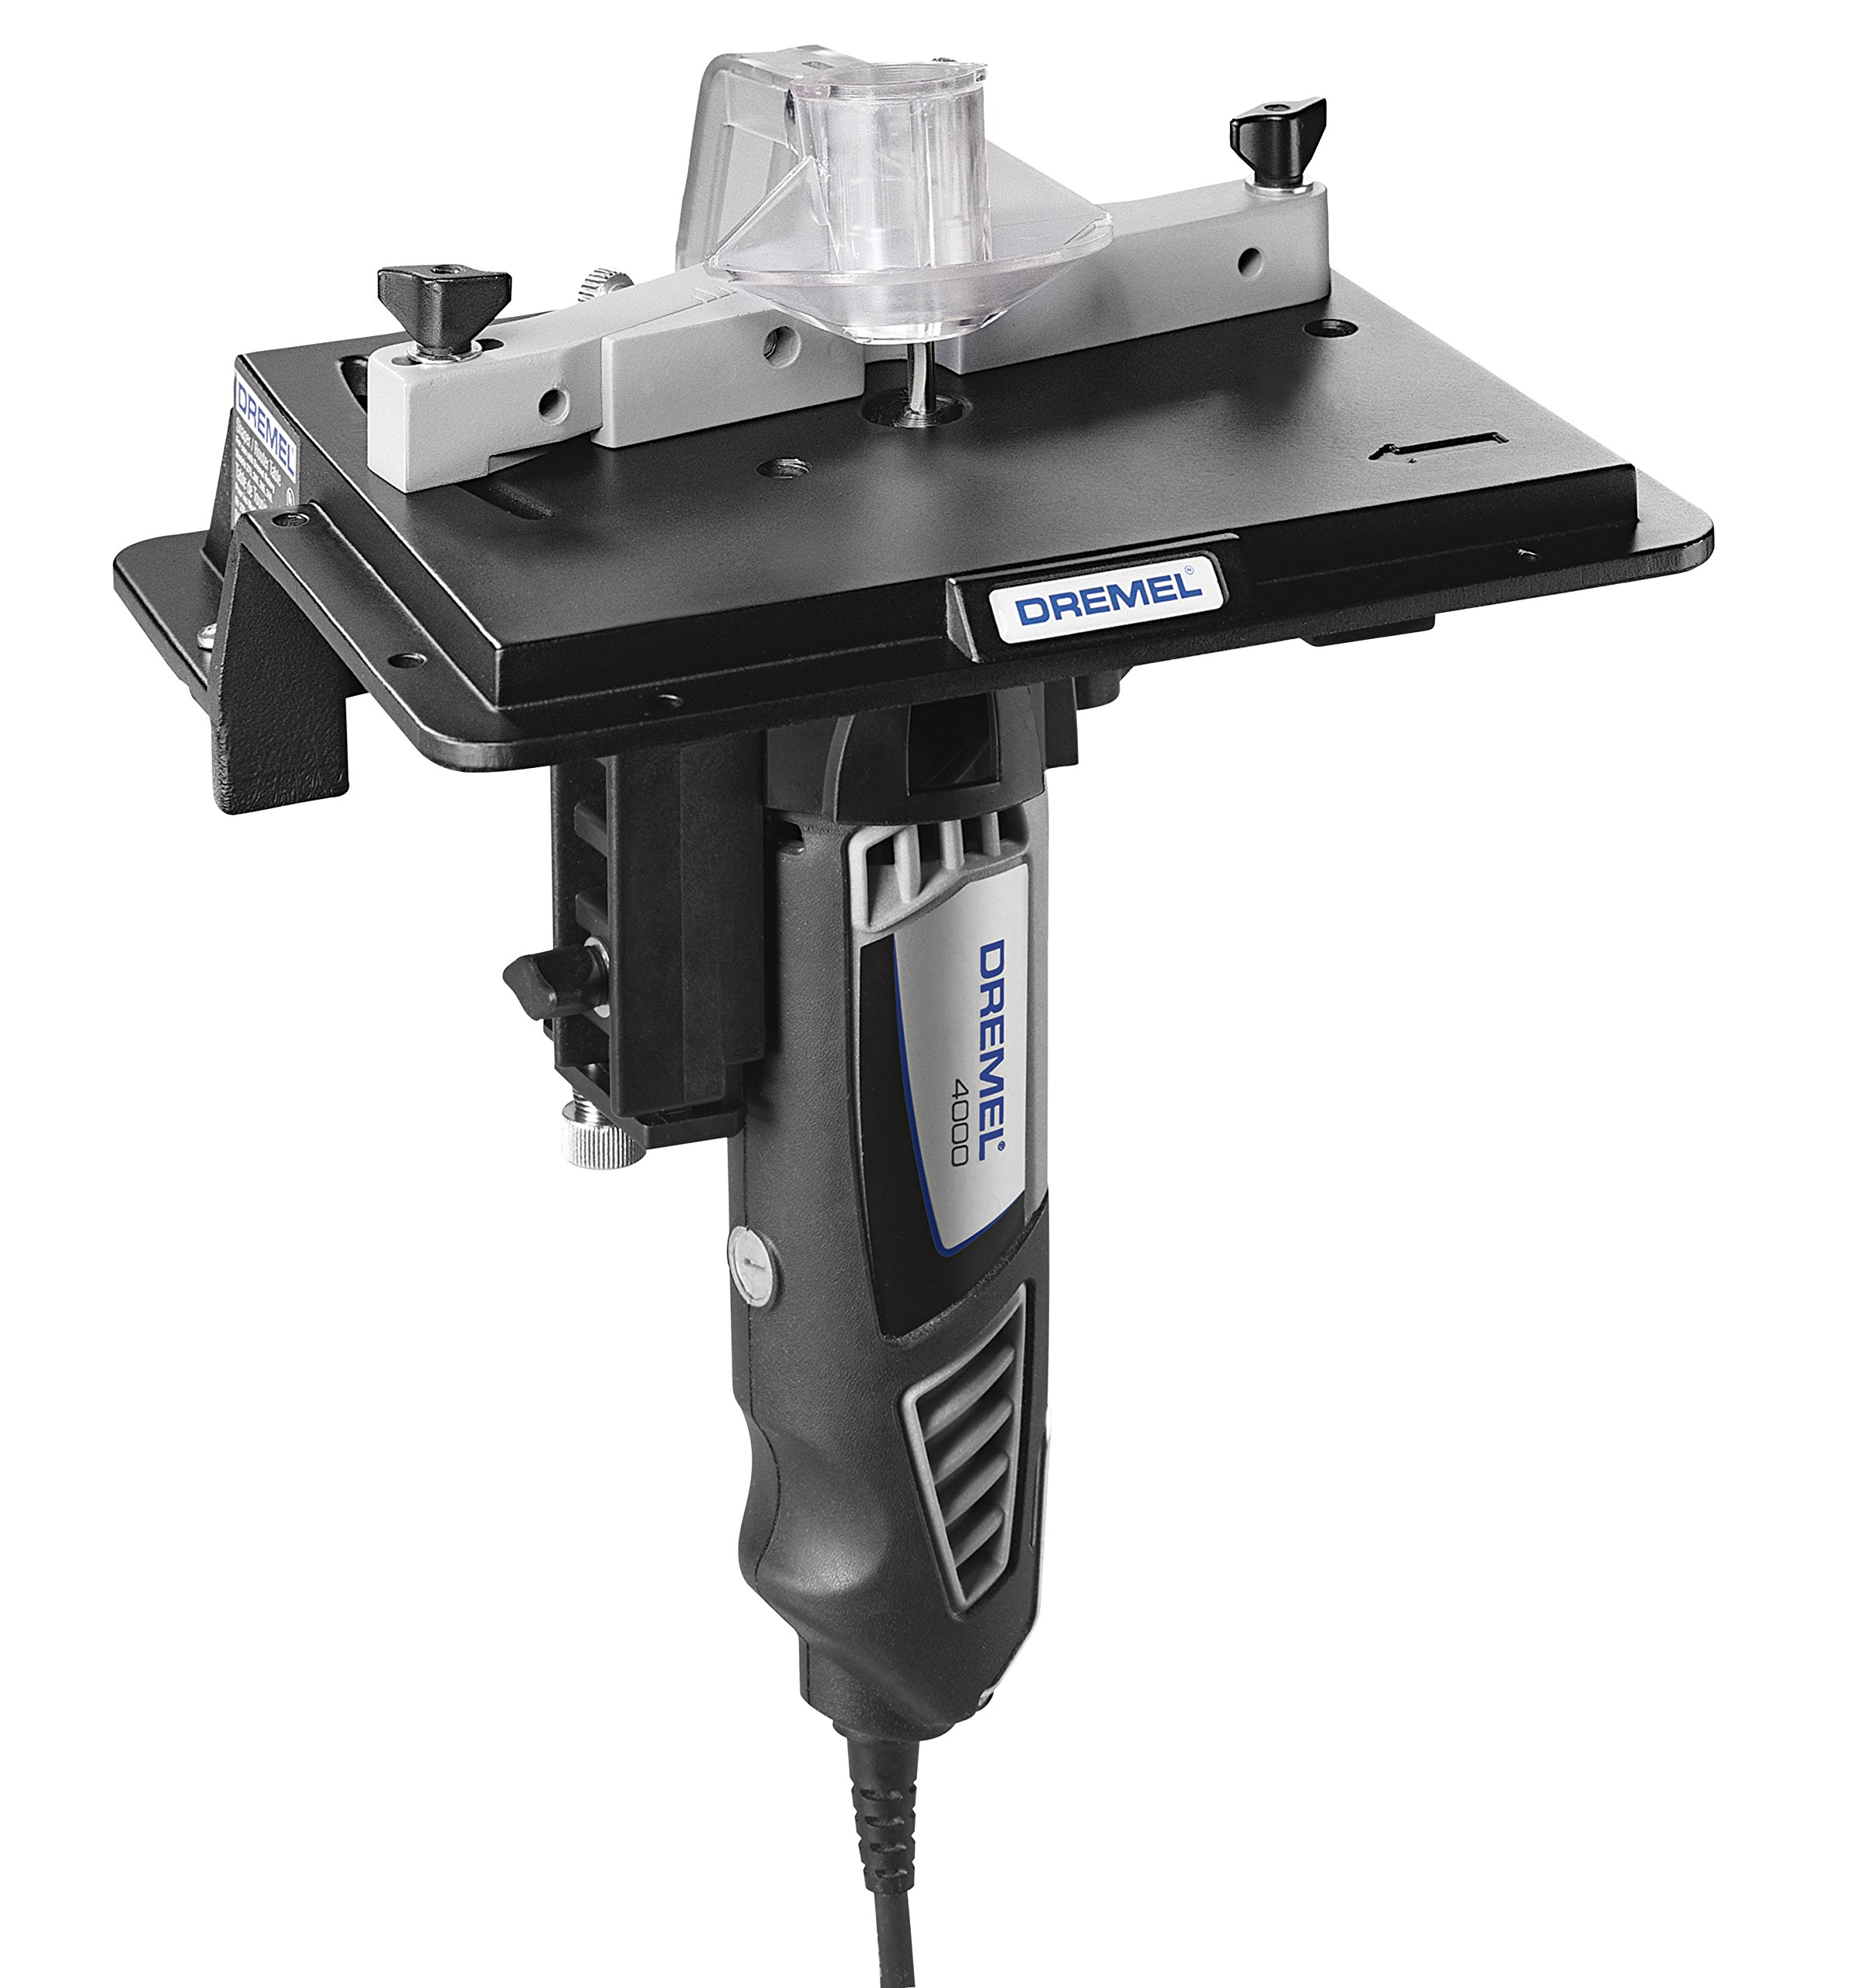 dremel 231 shaper router table instructions